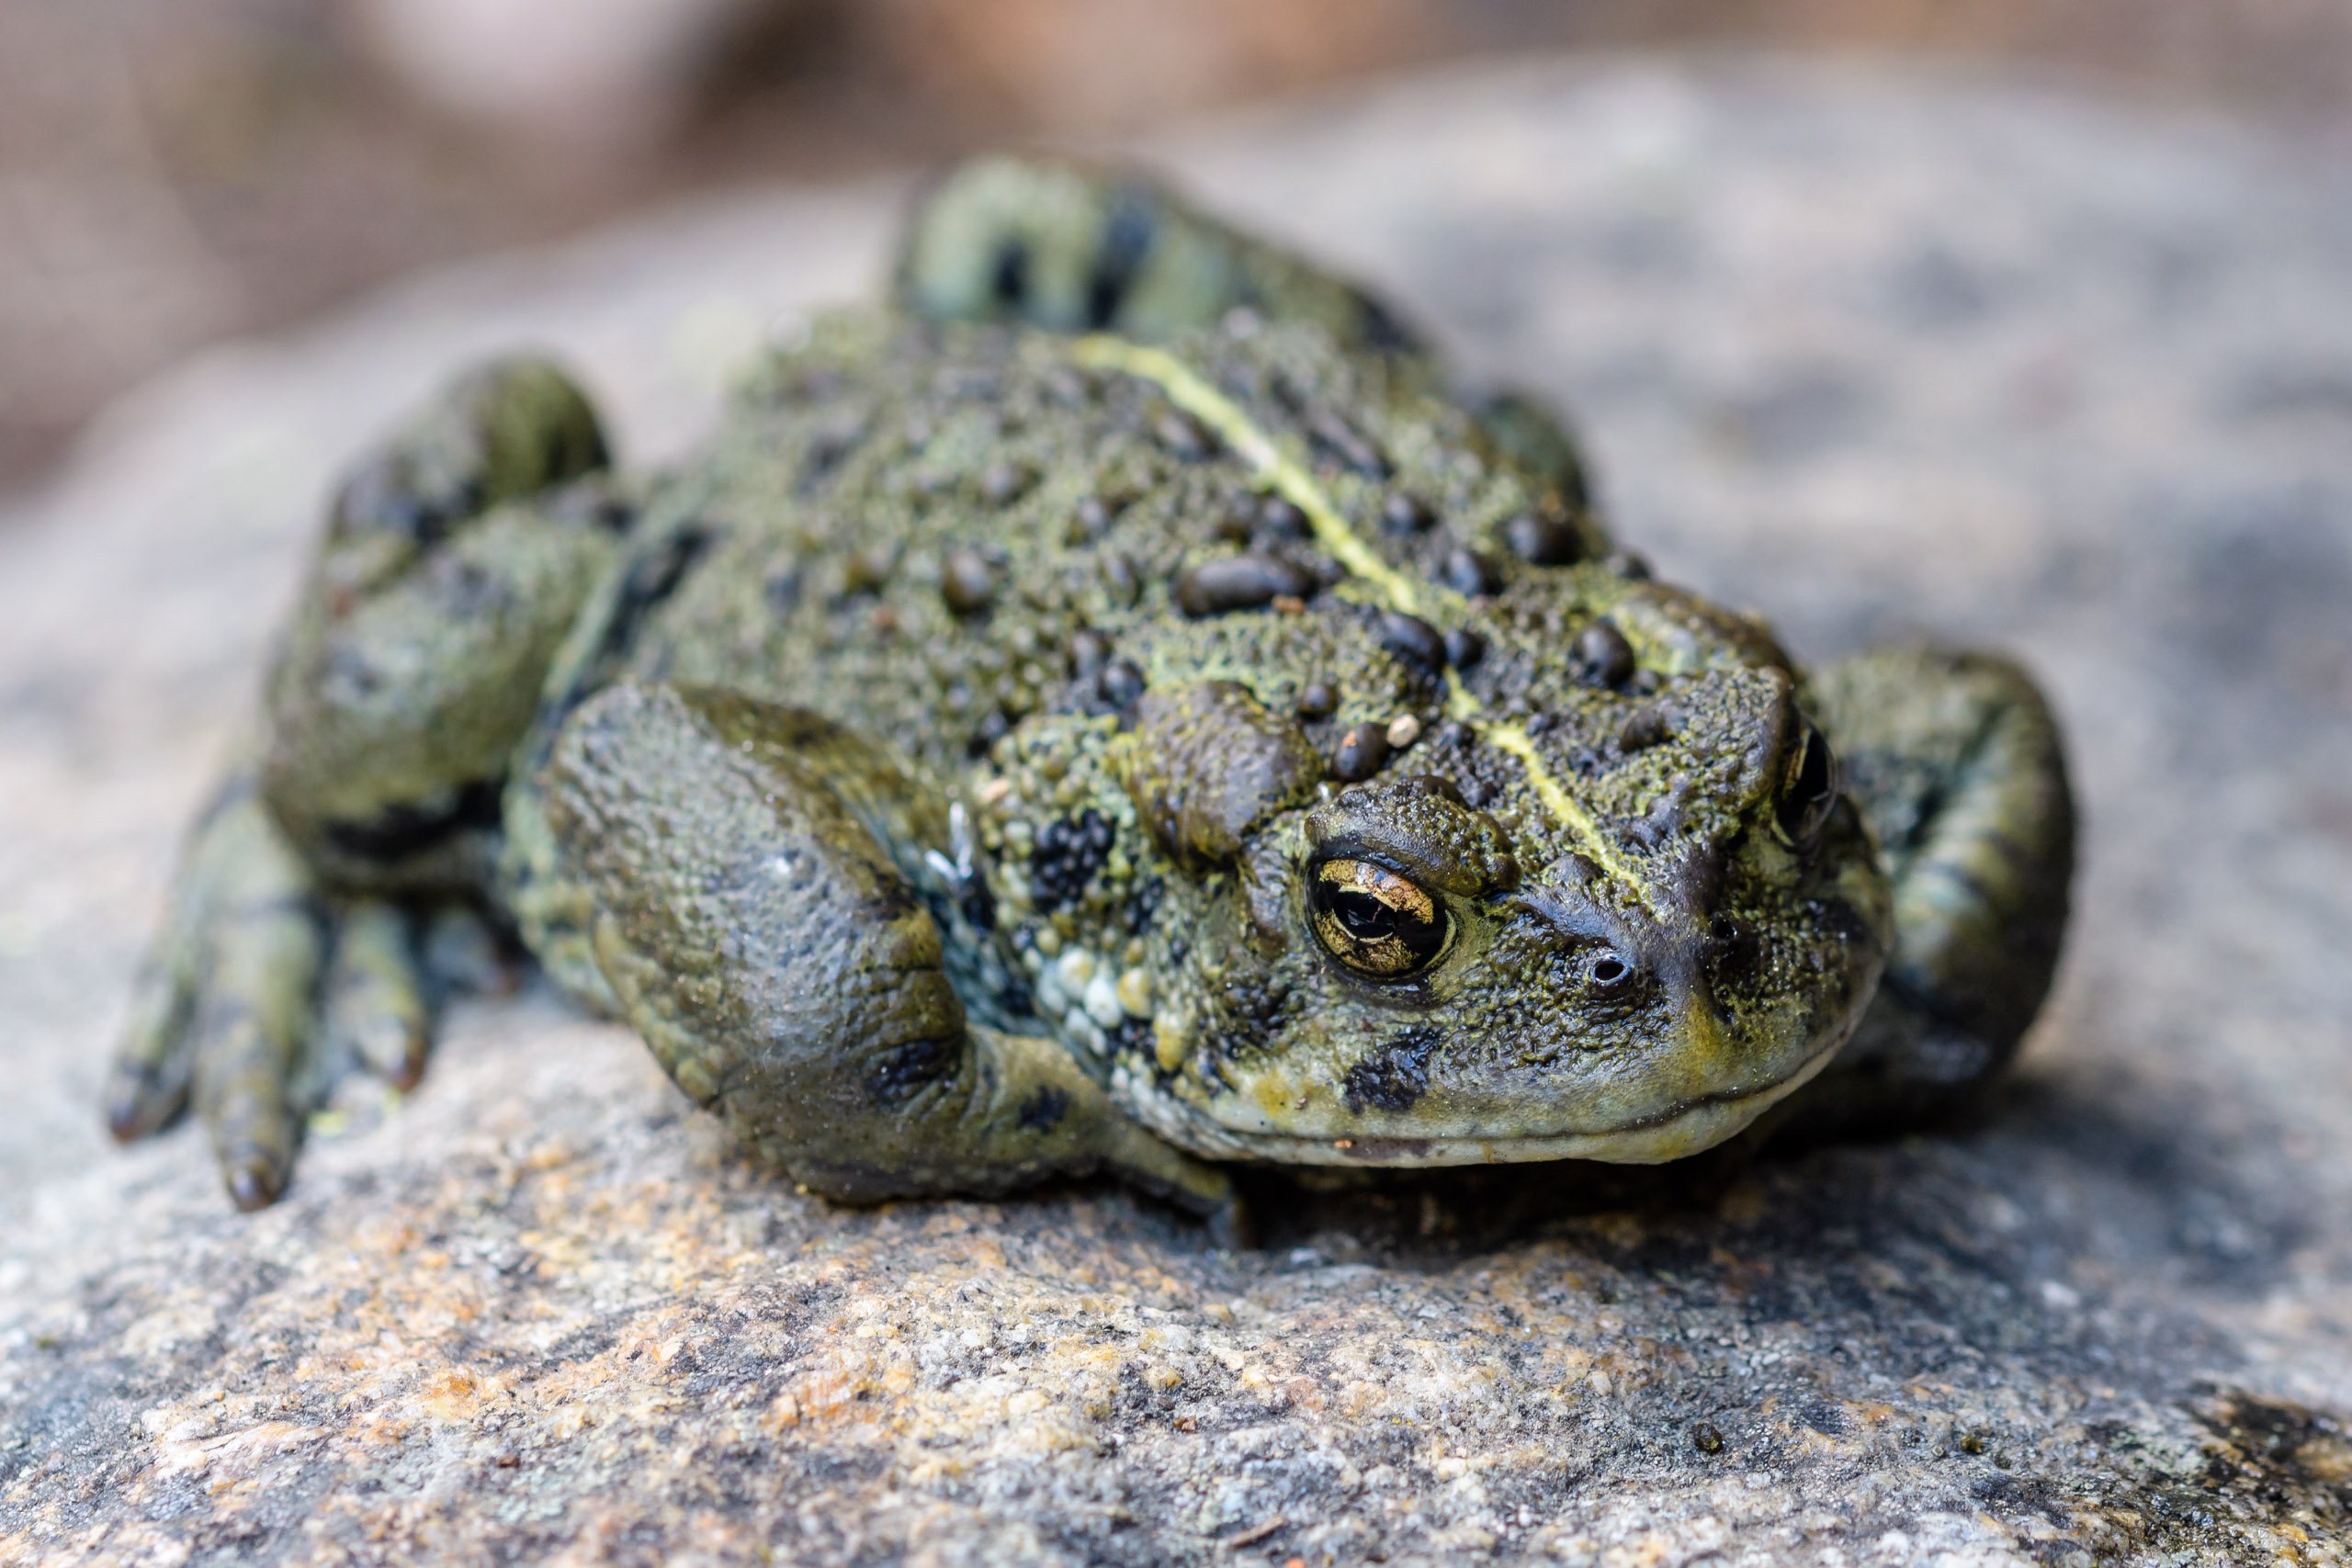 I was thinking that this Western Toad had just crossed Big Creek